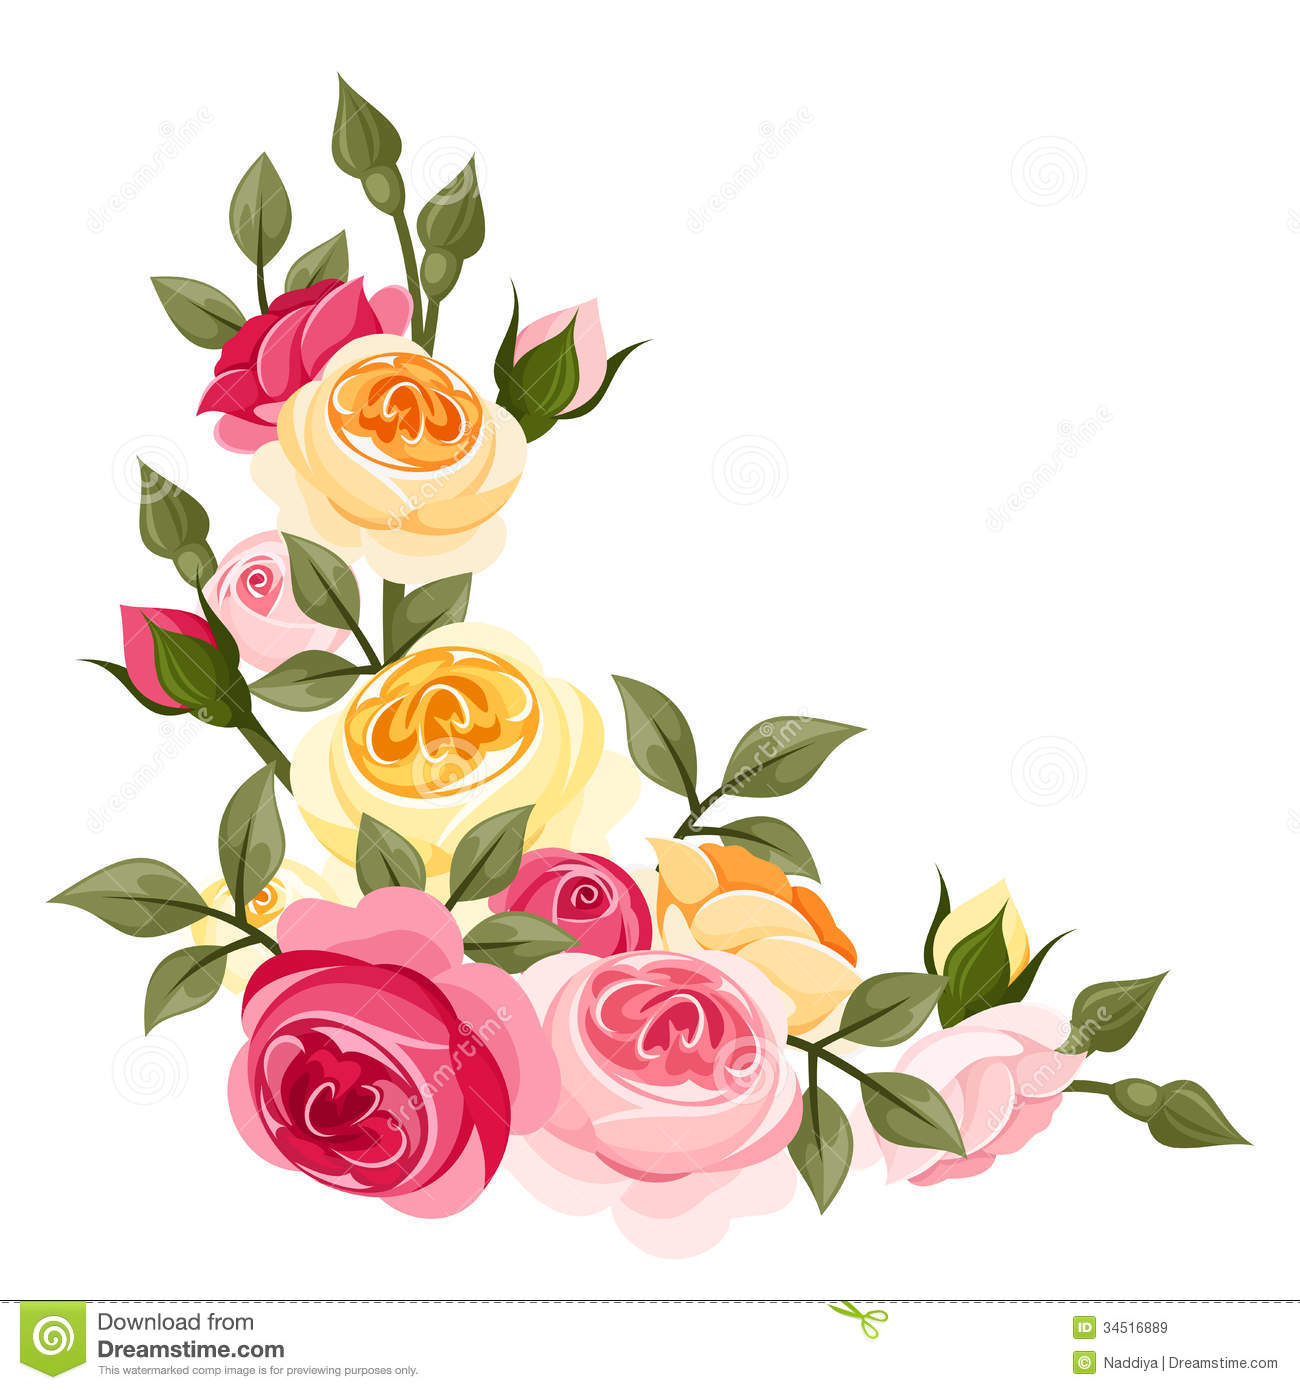 Rose clipart english rose #2